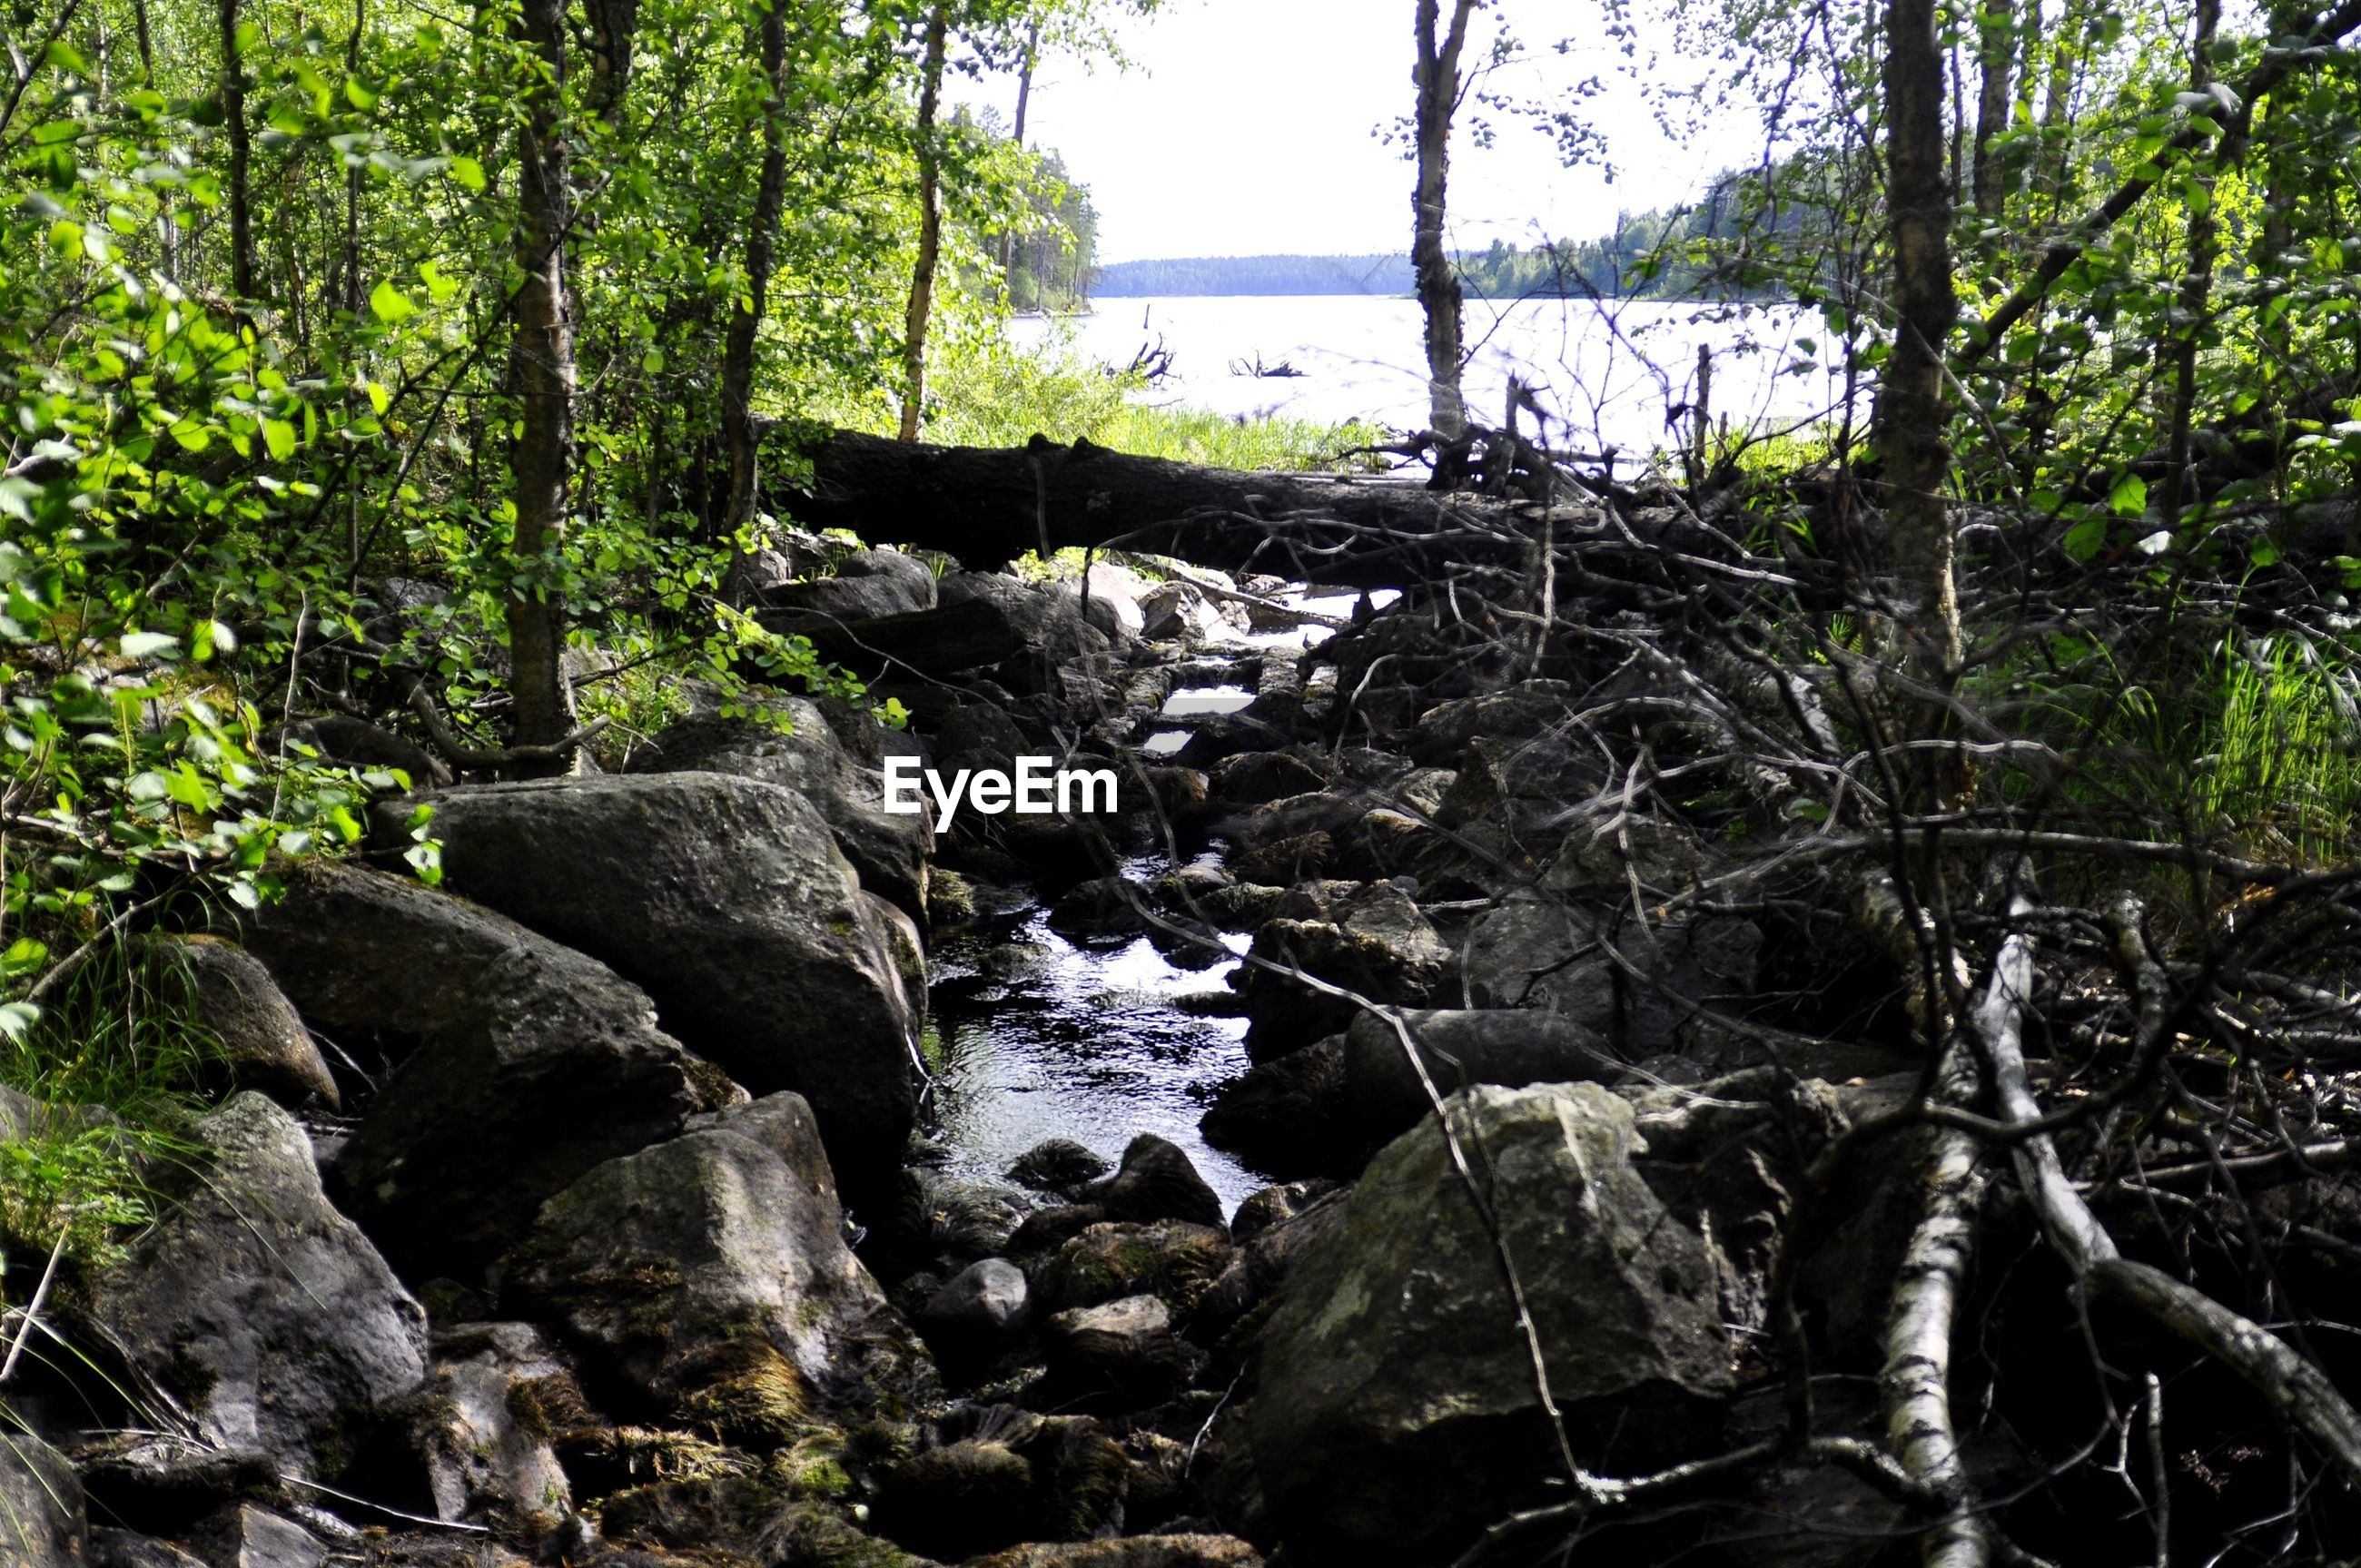 water, tranquility, tranquil scene, tree, scenics, beauty in nature, sea, nature, rock - object, idyllic, plant, rock, growth, branch, rock formation, day, forest, non-urban scene, horizon over water, outdoors